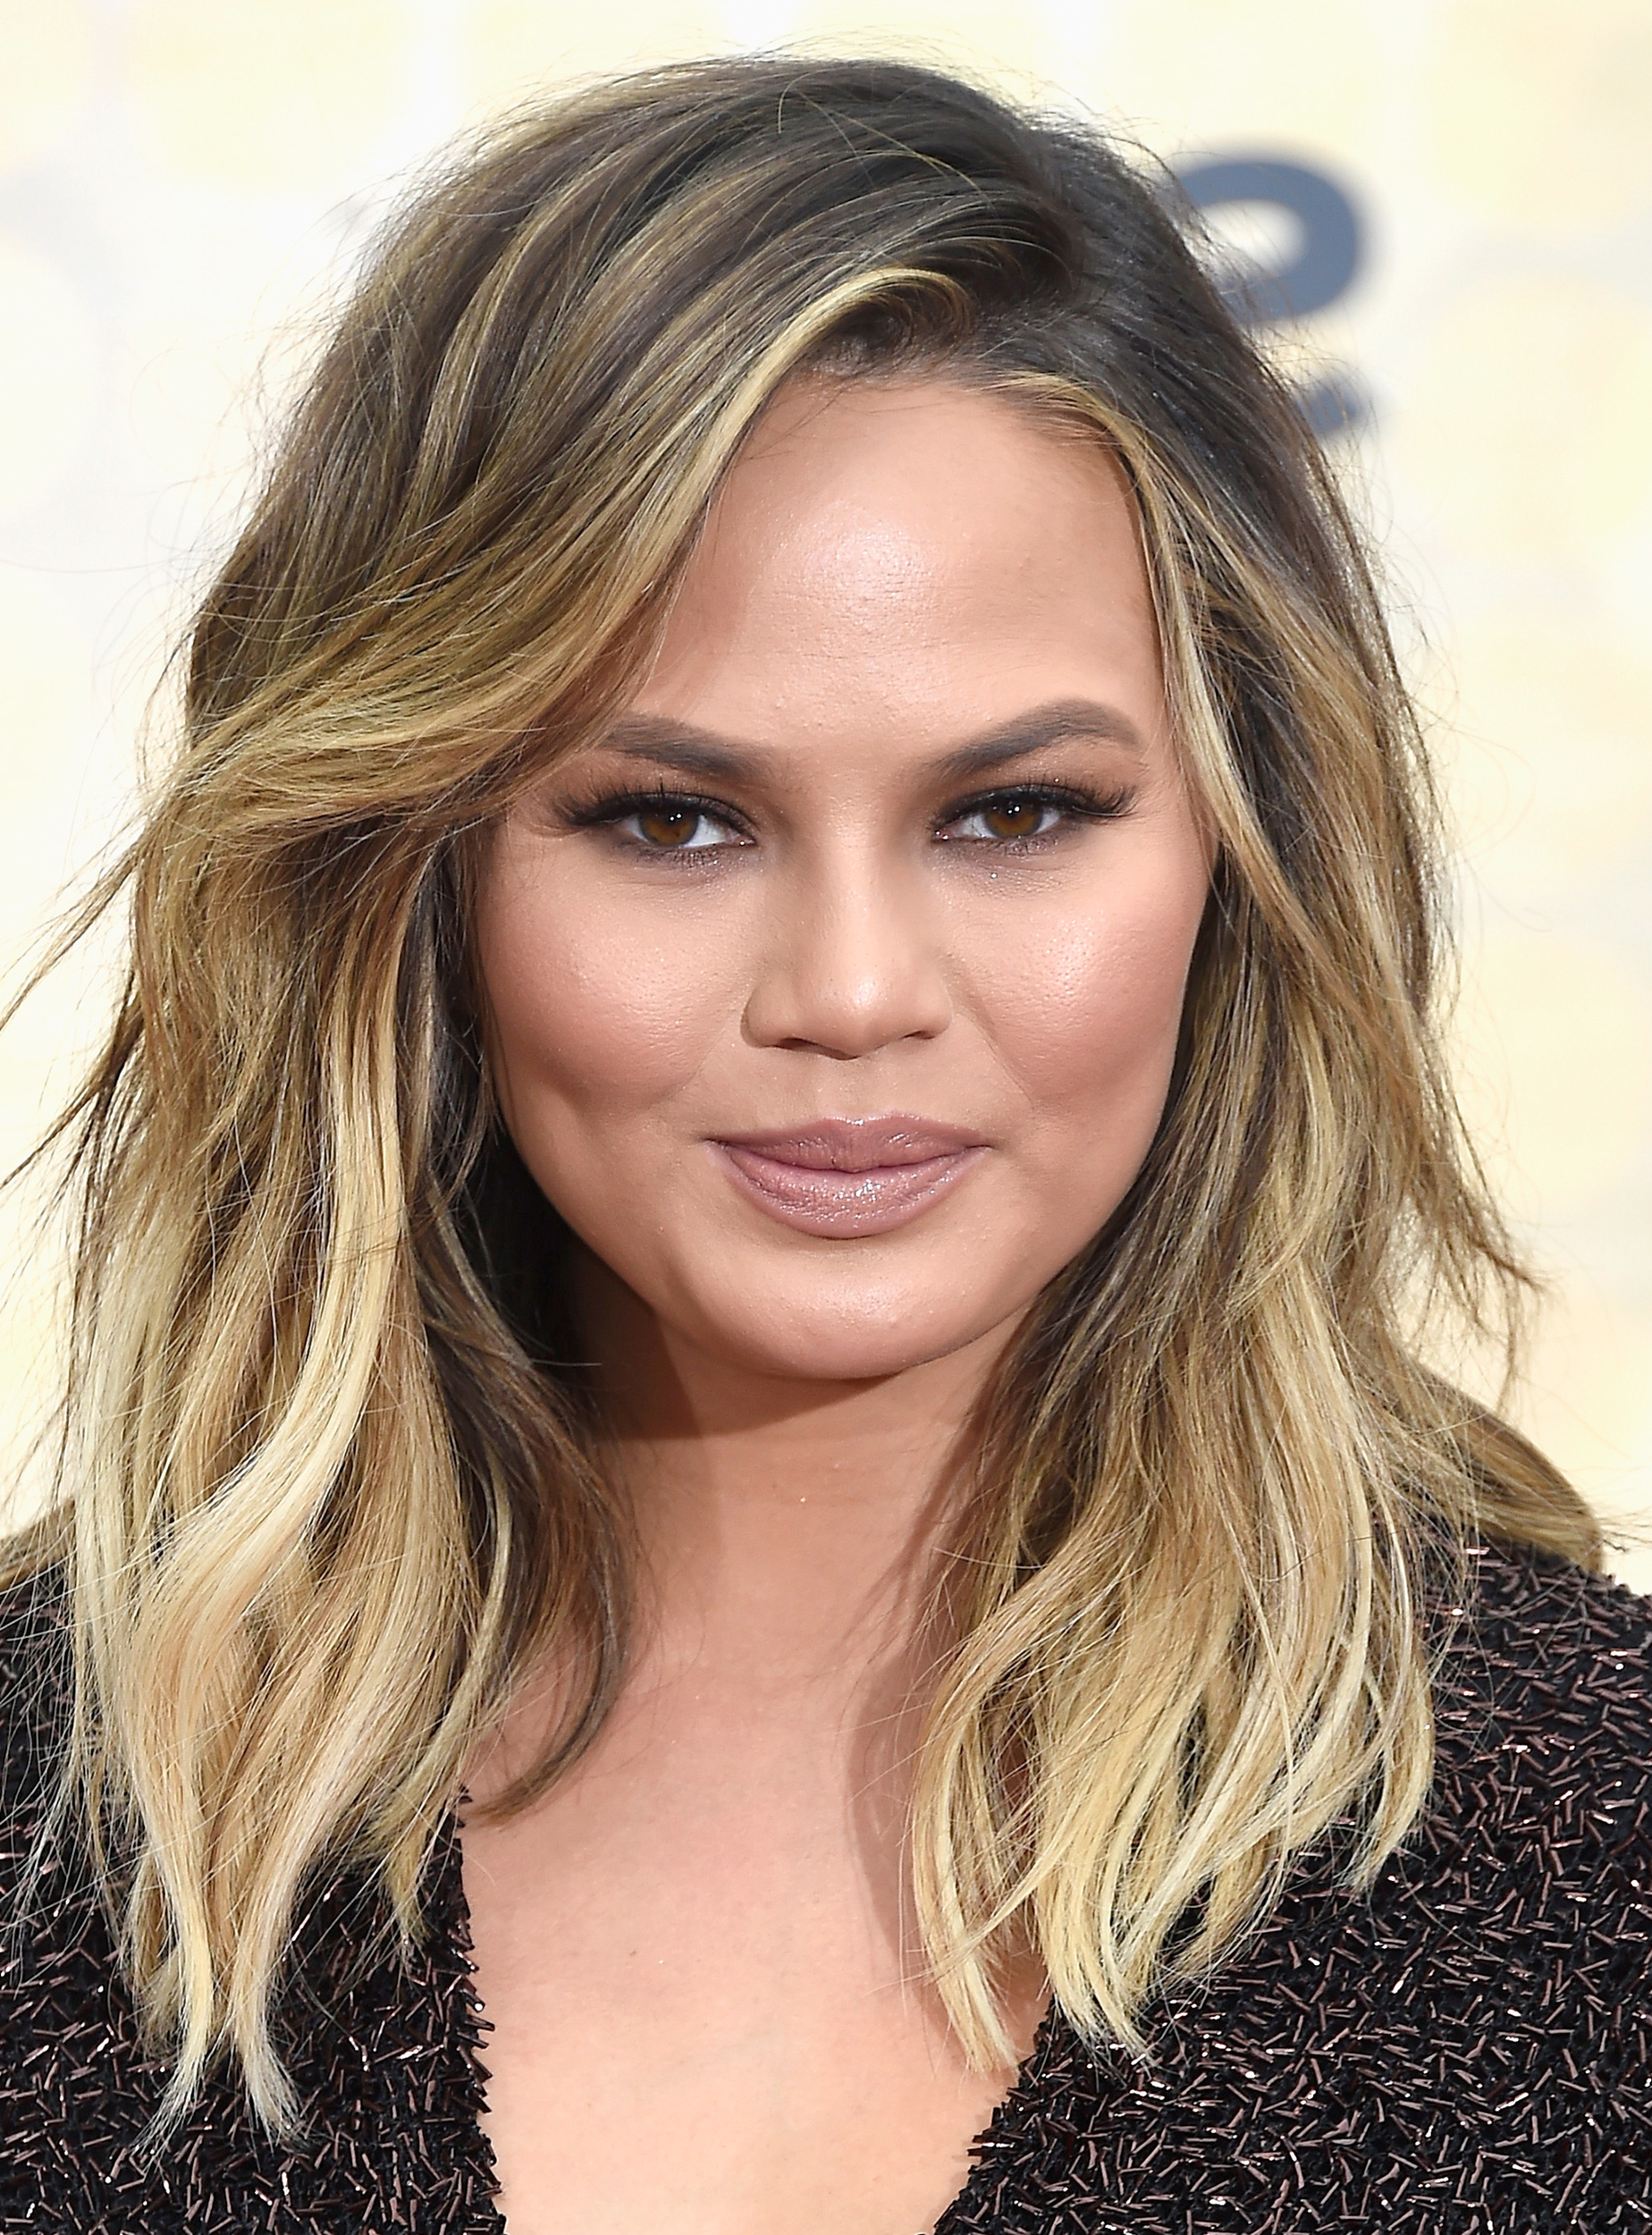 28 Best Hairstyles For Round Faces With Low Maintenance Short Haircuts For Round Faces (View 14 of 25)